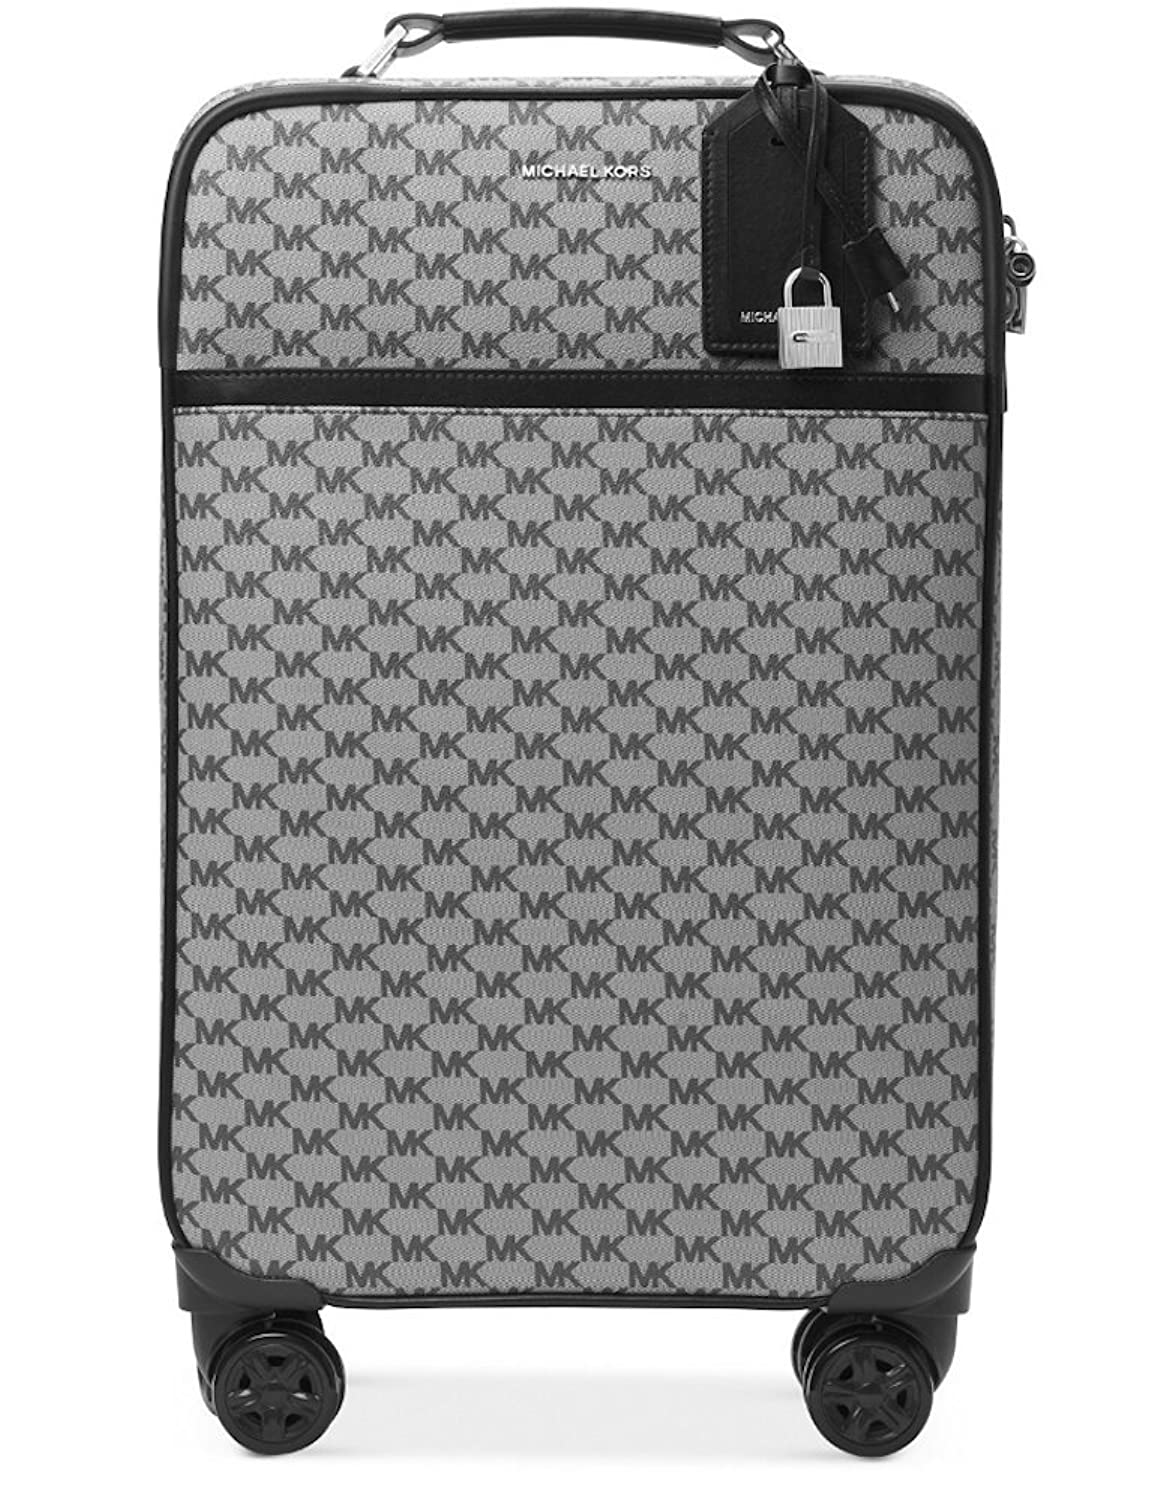 New Authentic Michael Kors Trolley Travel Suitcase Jetset Lugagge Luggage Black Signature Suitcases